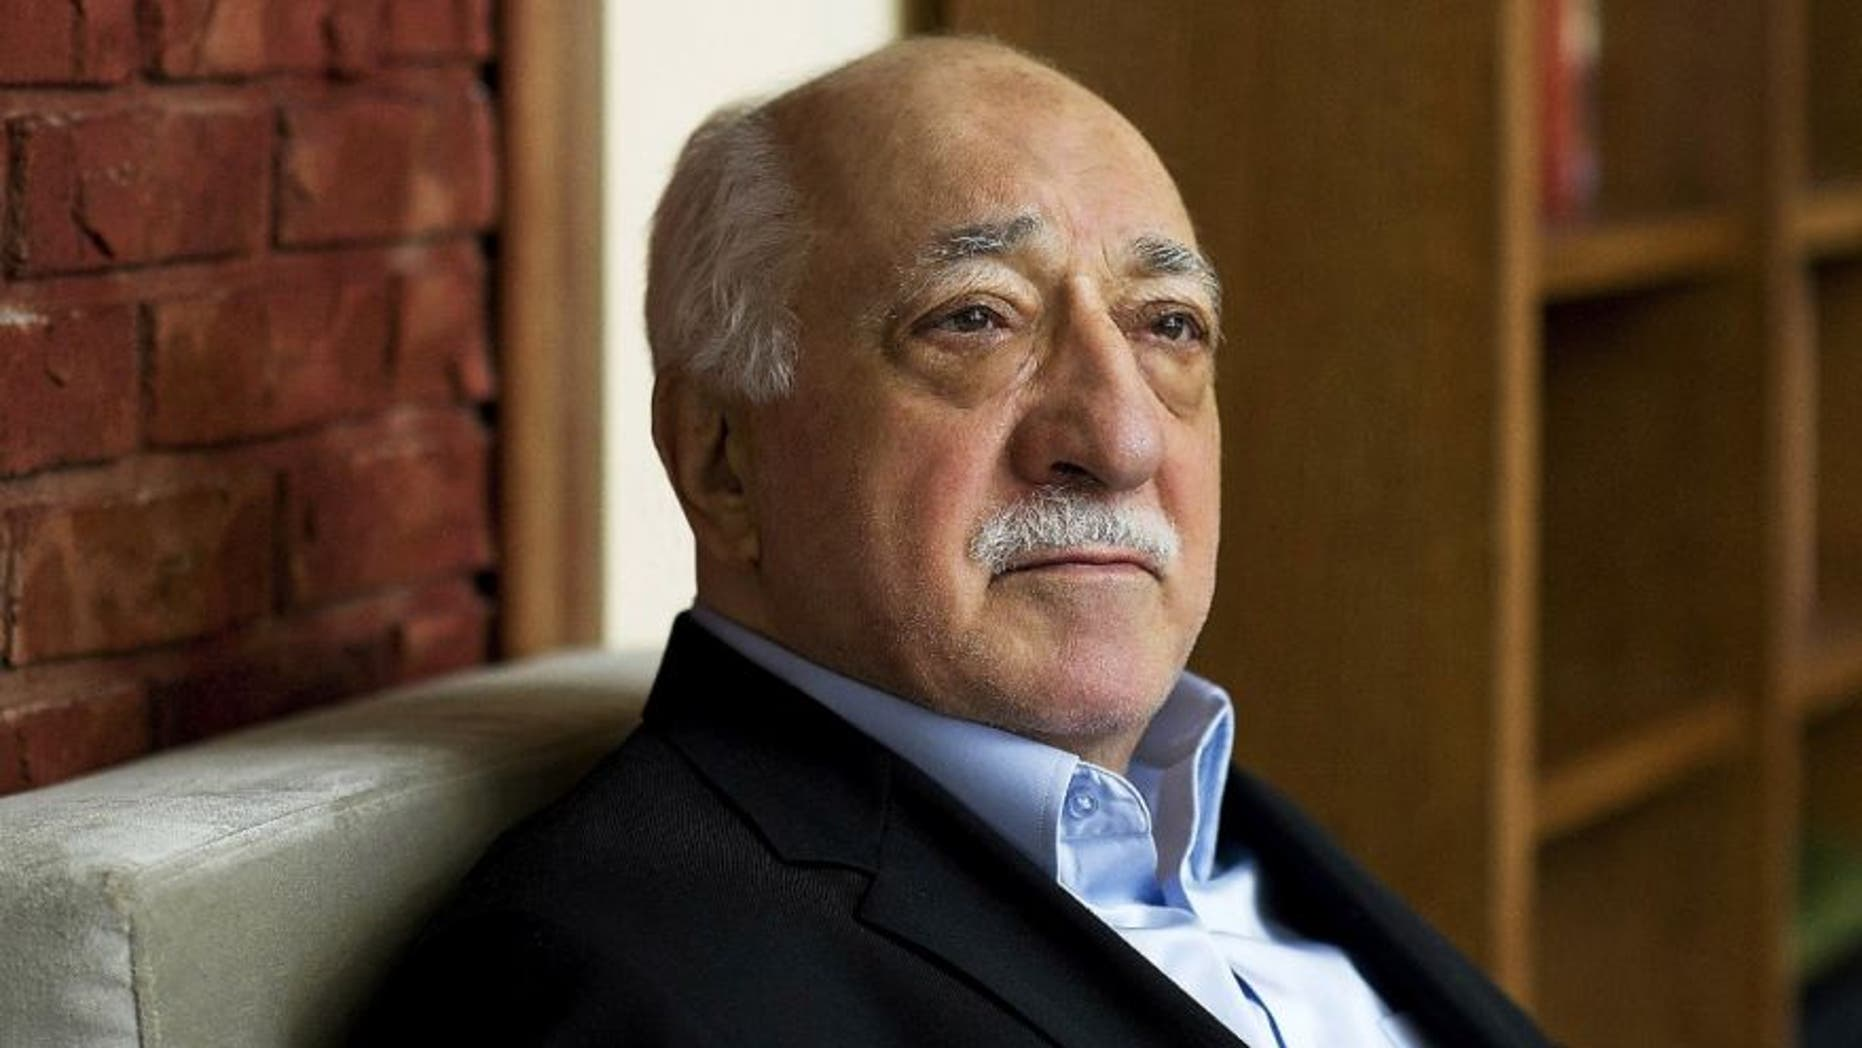 Turkish Islamic preacher Fethullah Gulen, pictured at his residence in Saylorsburg, Pa., is charged in Turkey with plotting to overthrow the government.